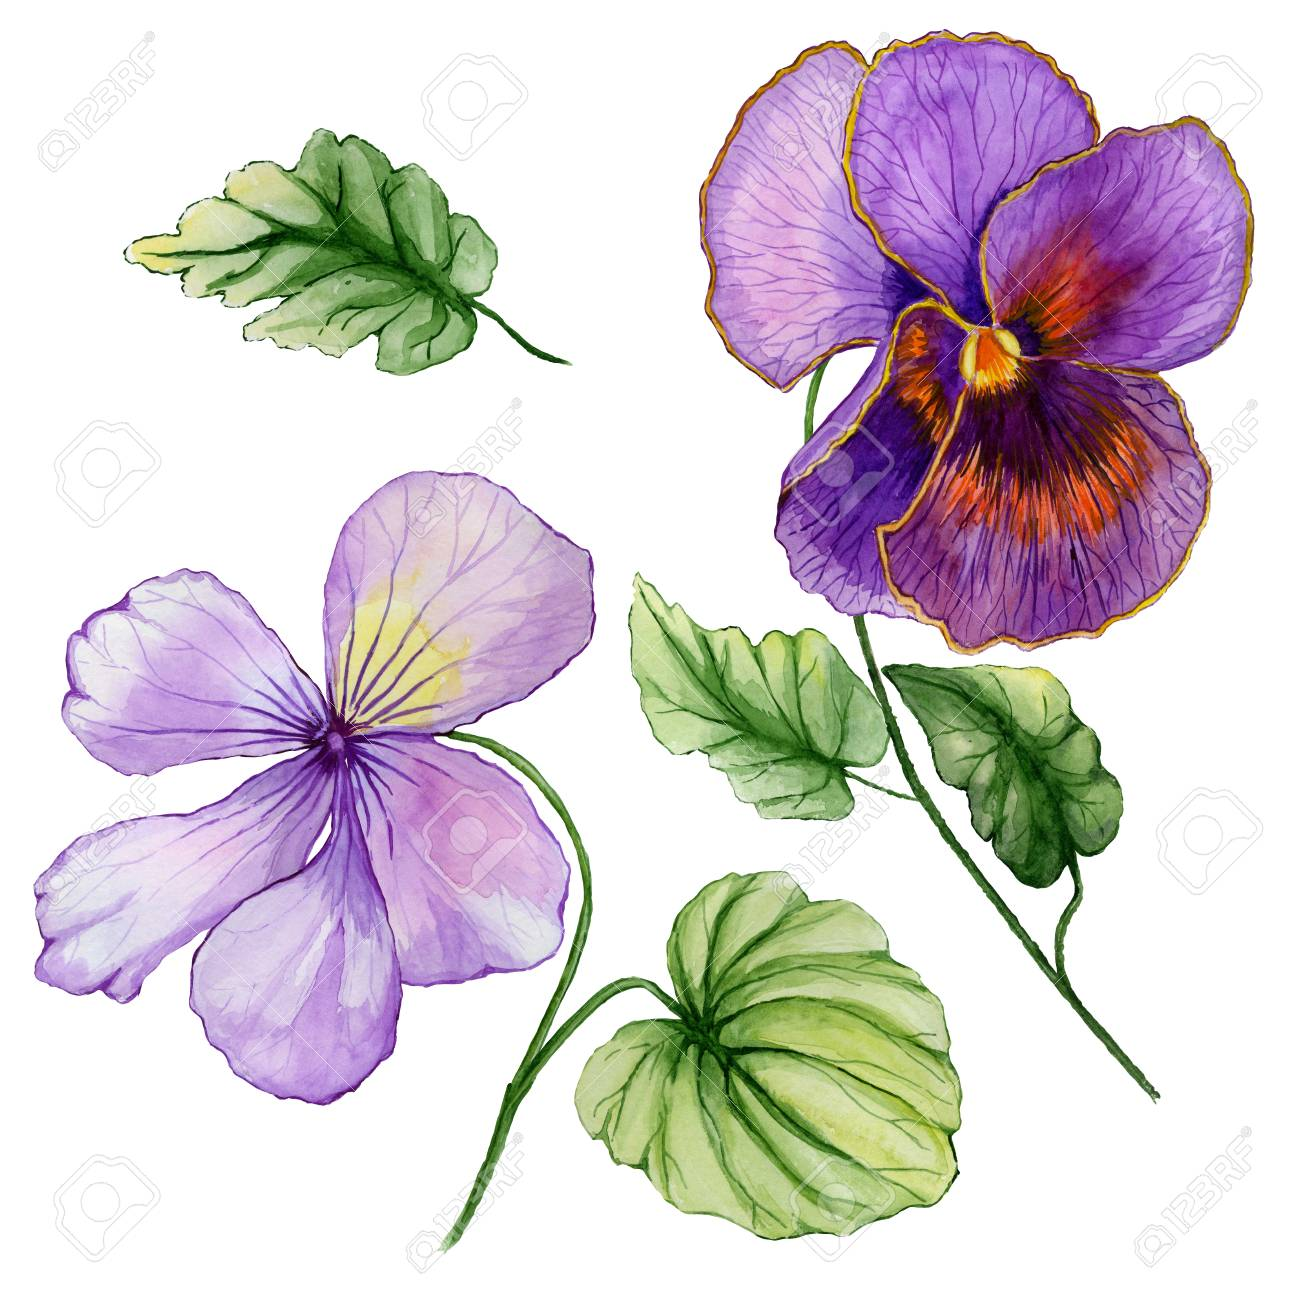 Beautiful Botanic Set Vivid Purple Viola Flowers And Leaves Stock Photo Picture And Royalty Free Image Image 98594648